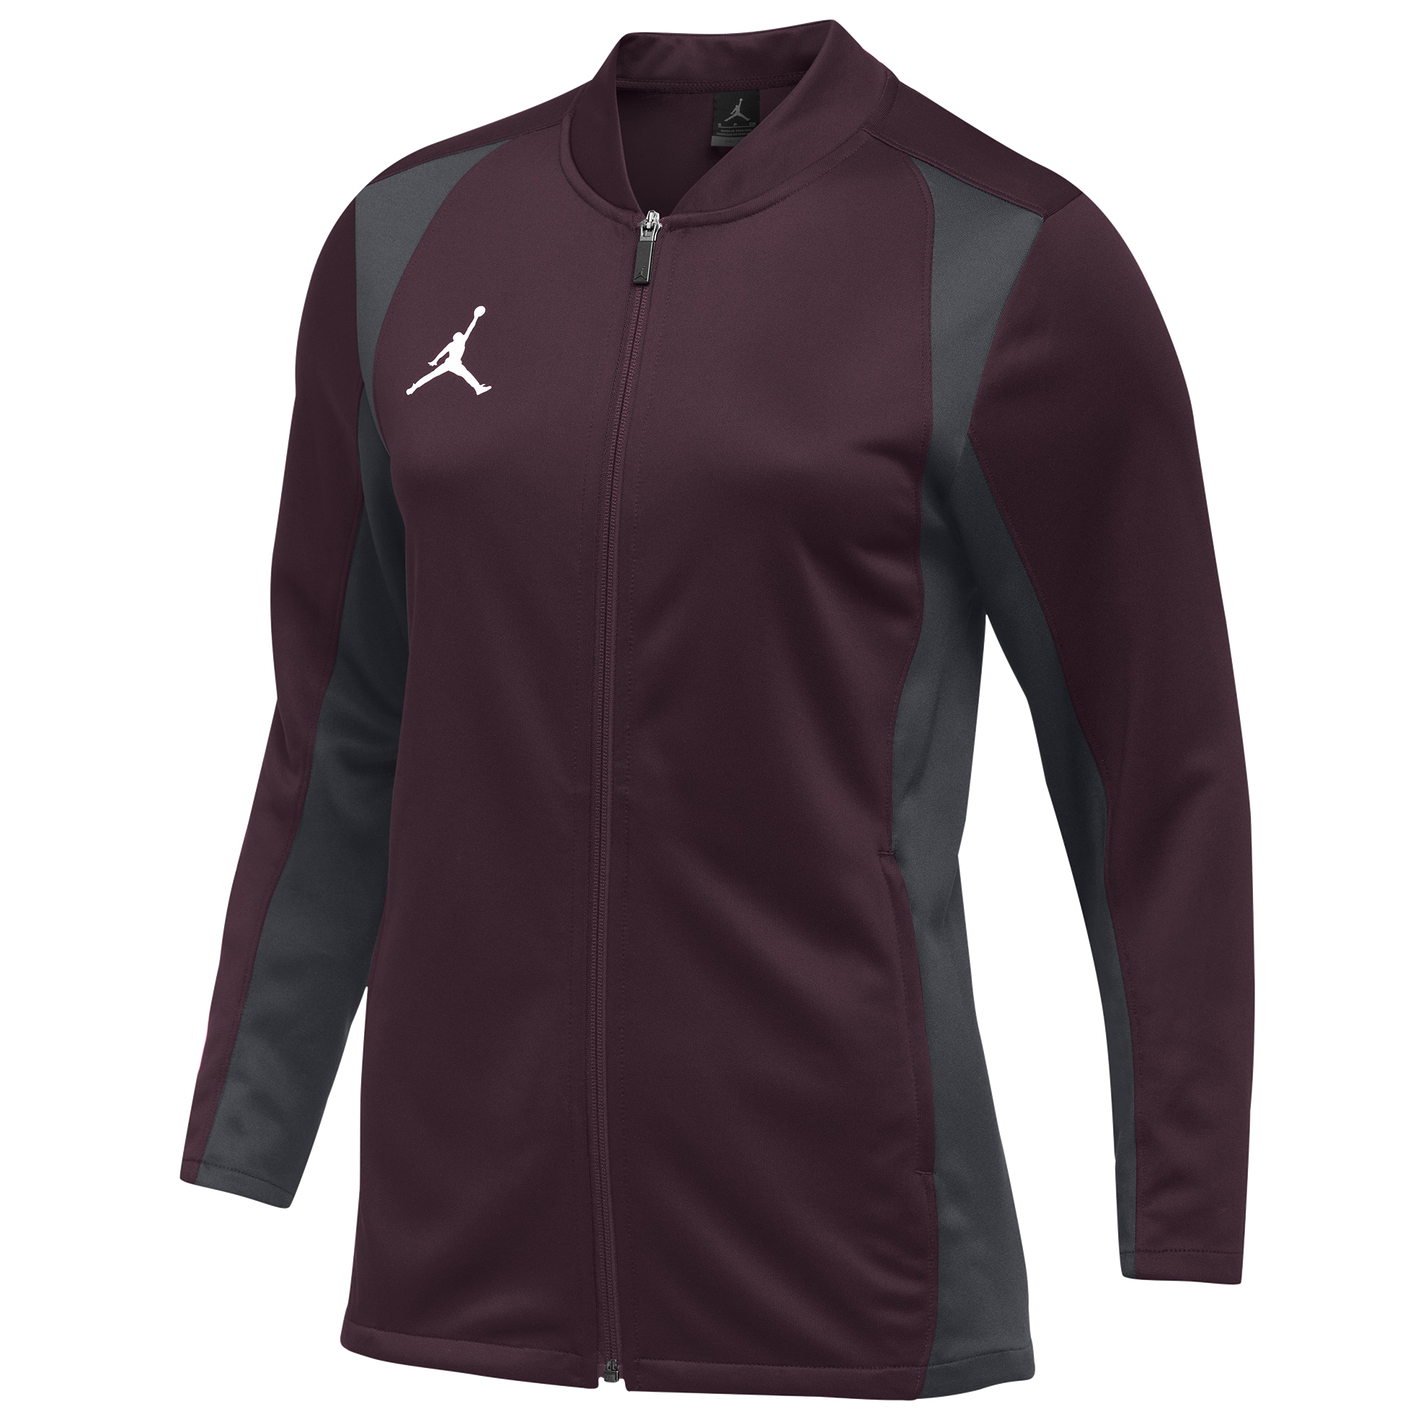 464434e6076f Jordan Team Basketball Flight Knit Jacket - Women s - Basketball ...